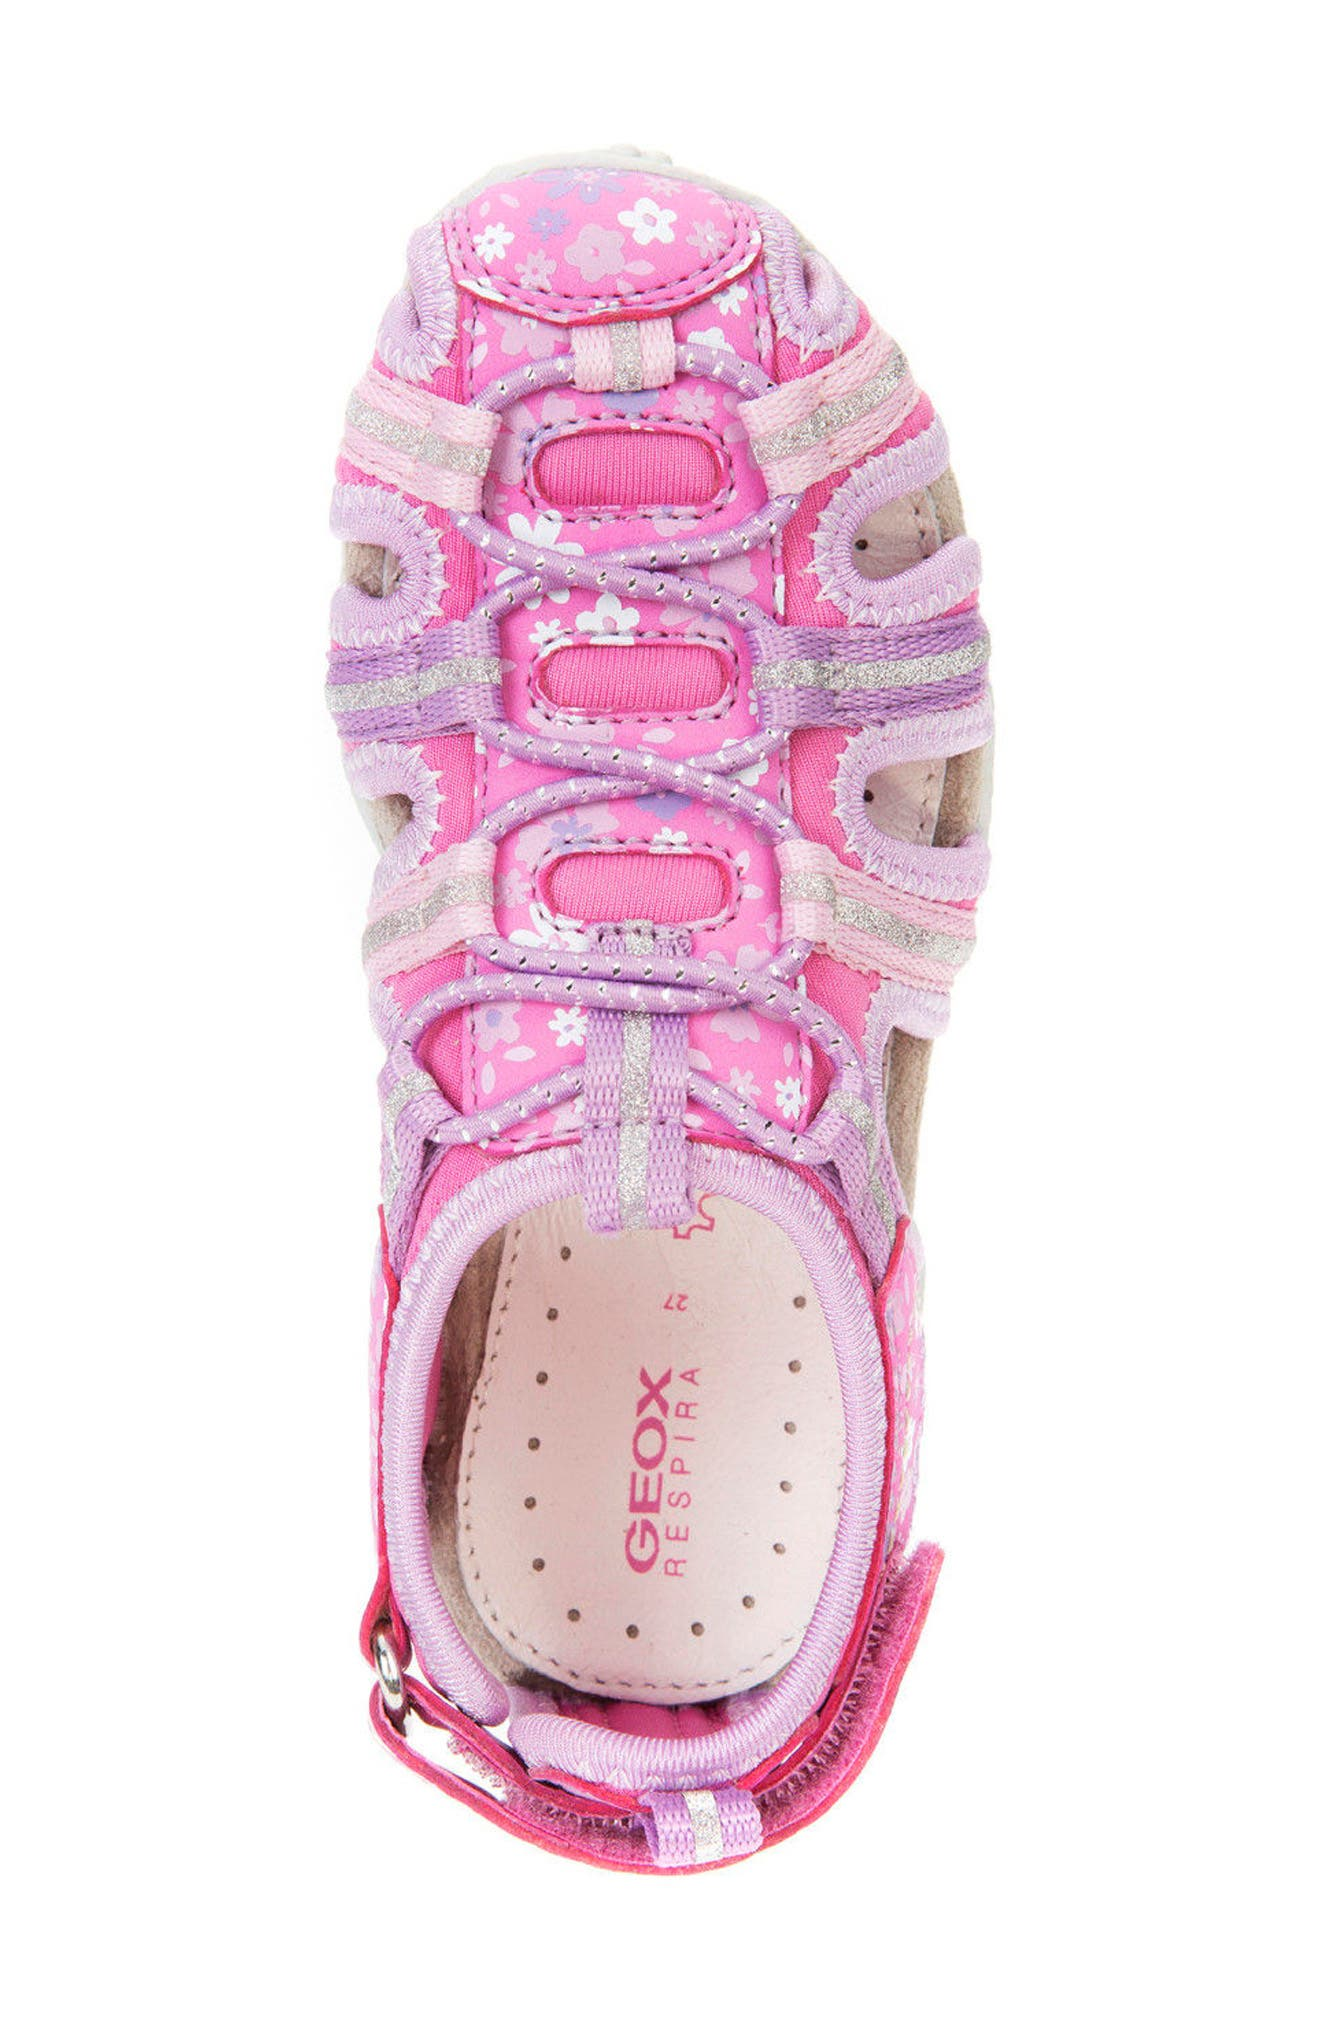 'Jr Roxanne 38' Sandal,                             Alternate thumbnail 5, color,                             Fuchsia/ Lilac